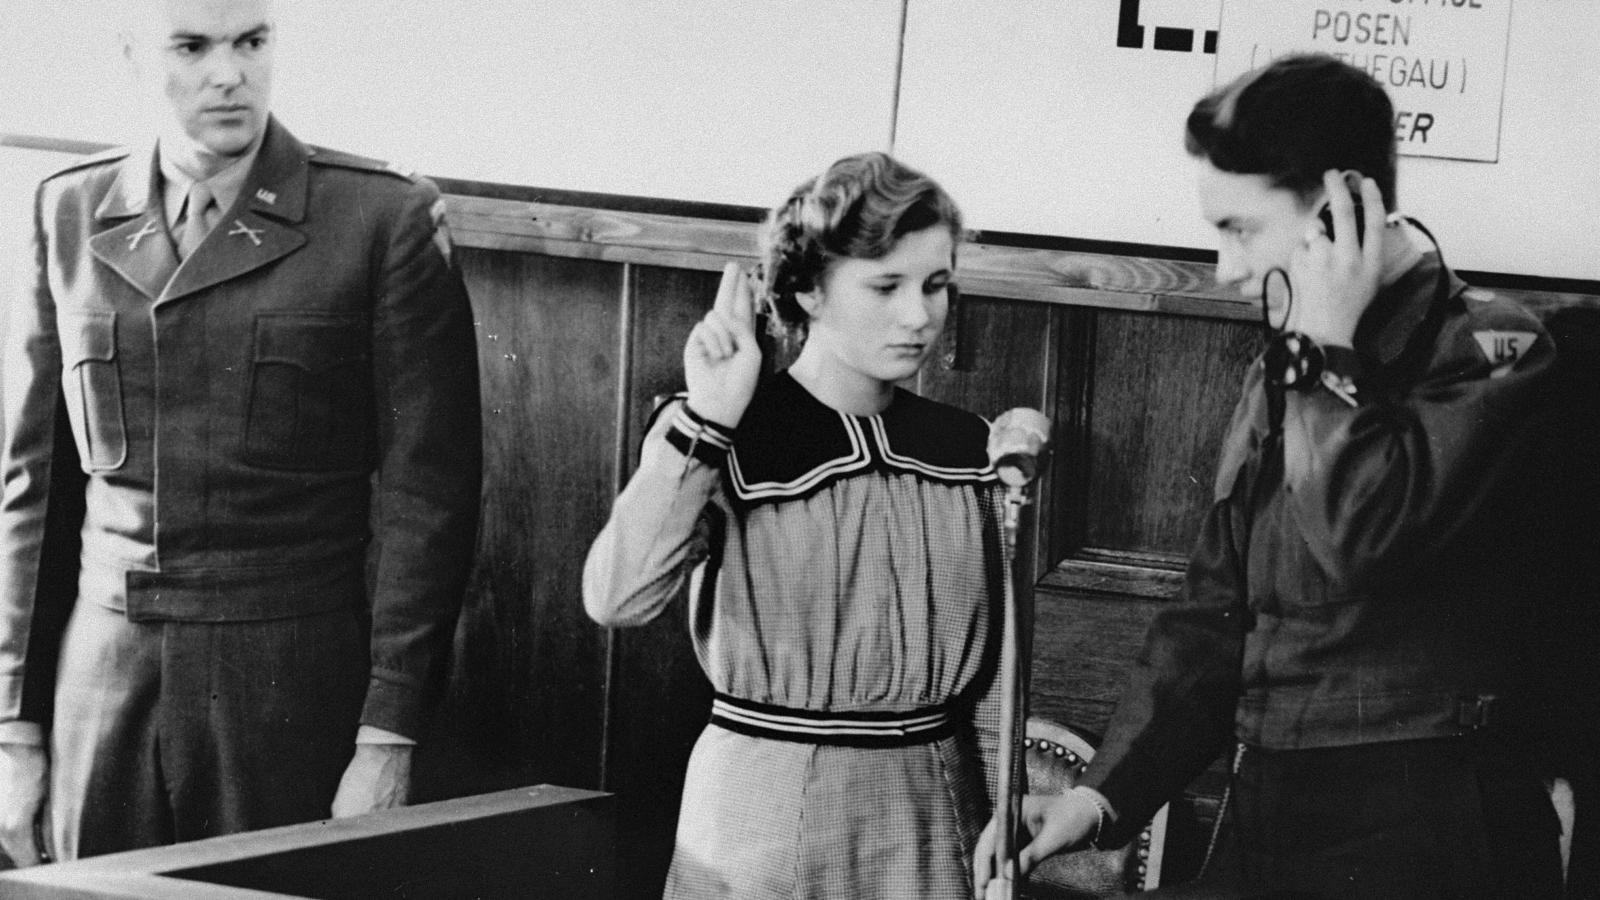 Maria Dolezalova, one of the children kidnapped by the Germans after they destroyed the Czech town of Lidice, is sworn in as a prosecution witness at the RuSHA Trial, Oct. 30, 1947. RuSHA was the Main Race and Resettlement Office, a central organization in the implementation of racial programs of the Third Reich. (United States Holocaust Memorial Museum, Courtesy of Hedwig Wachenheimer Epstein)